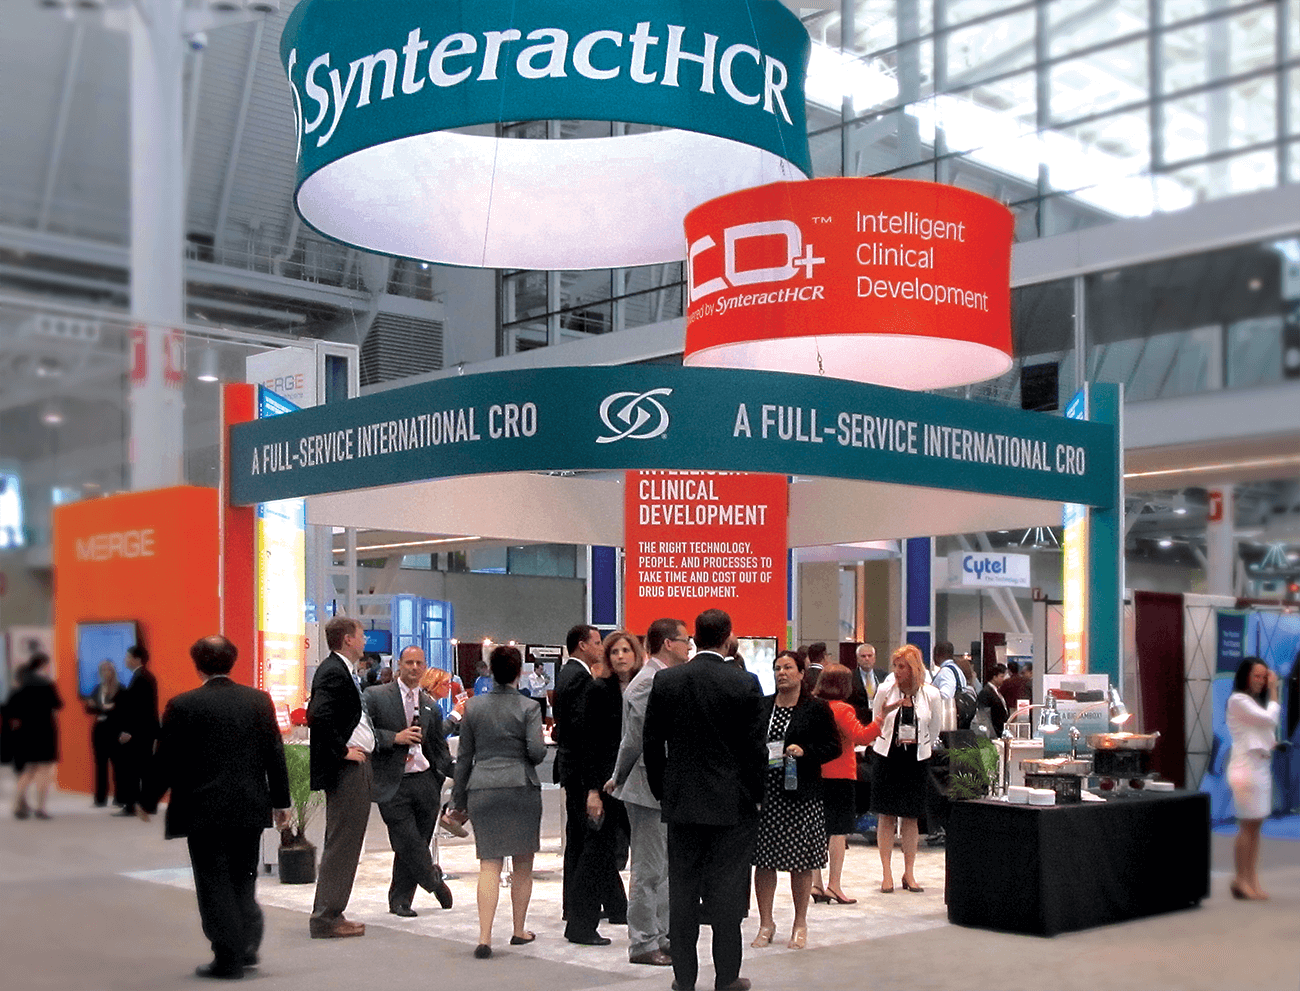 SynteractHCR-2013_Booth_Photo